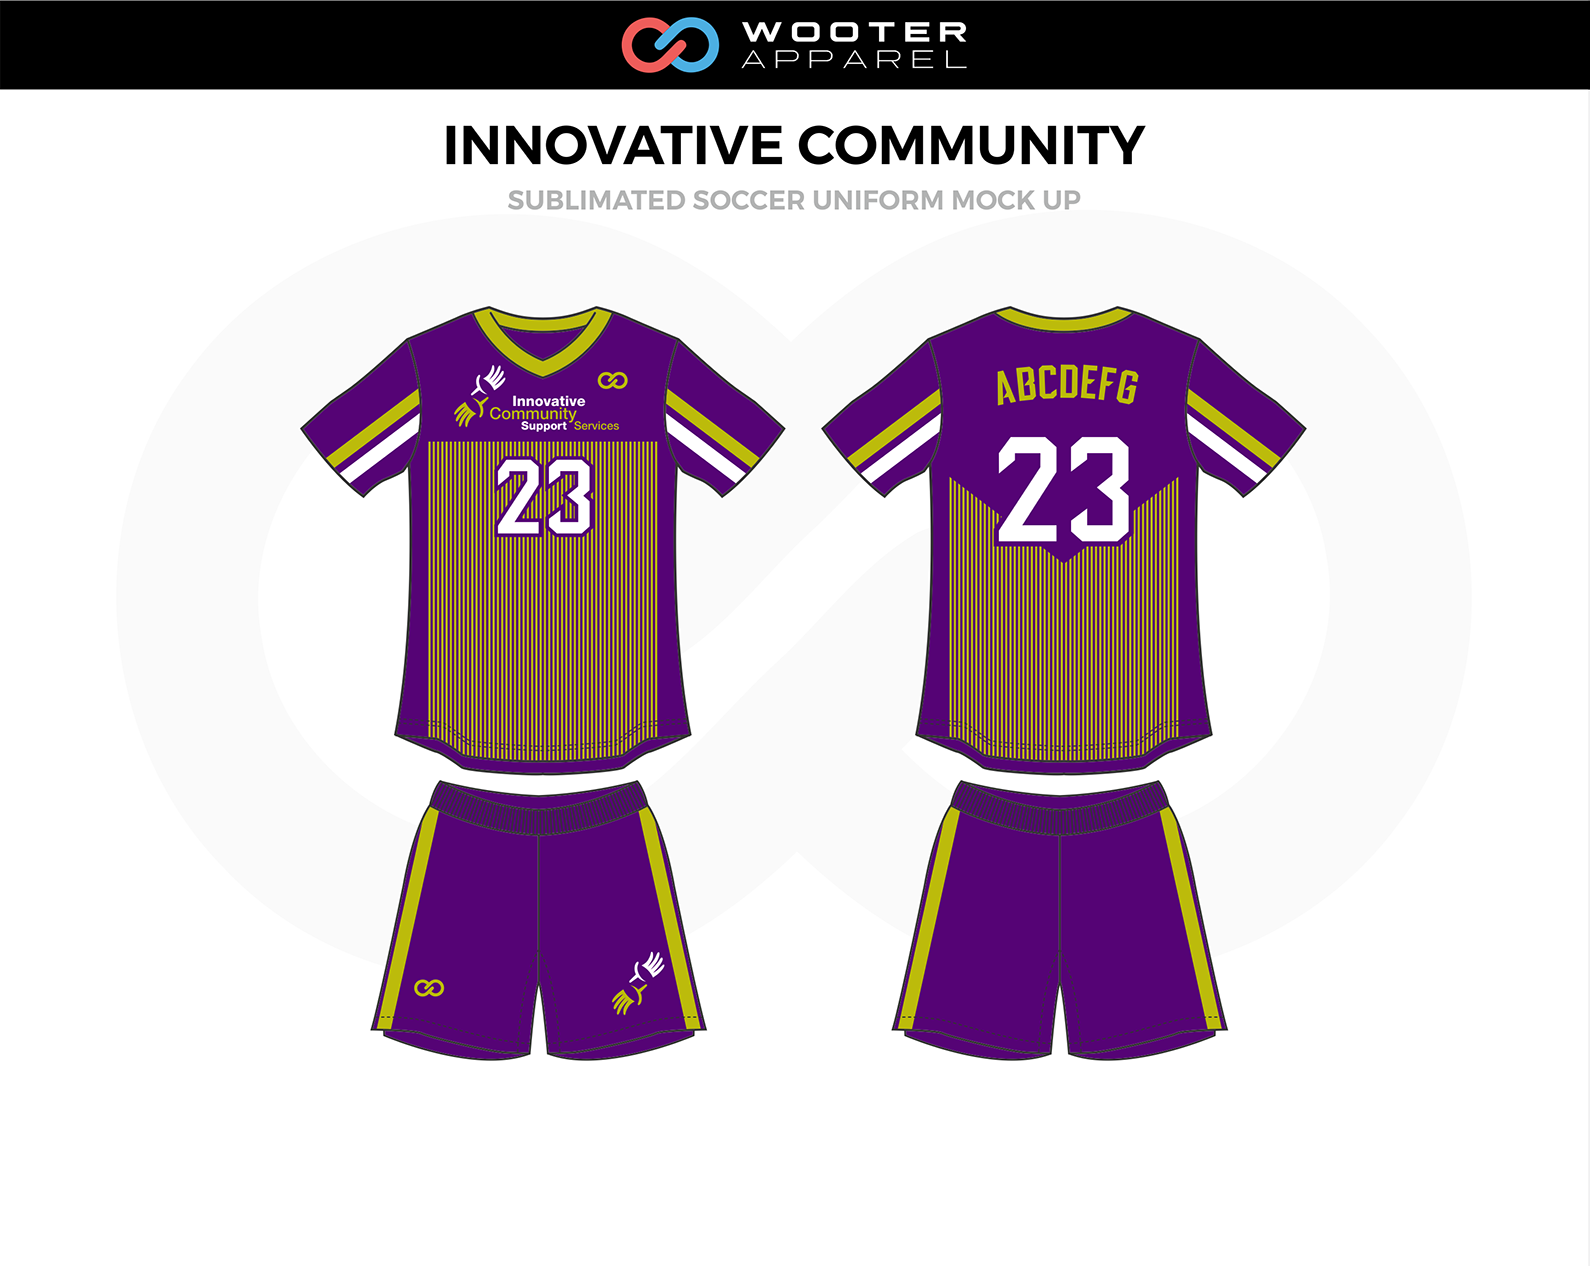 03_Innovative Community Support Services Soccer.png